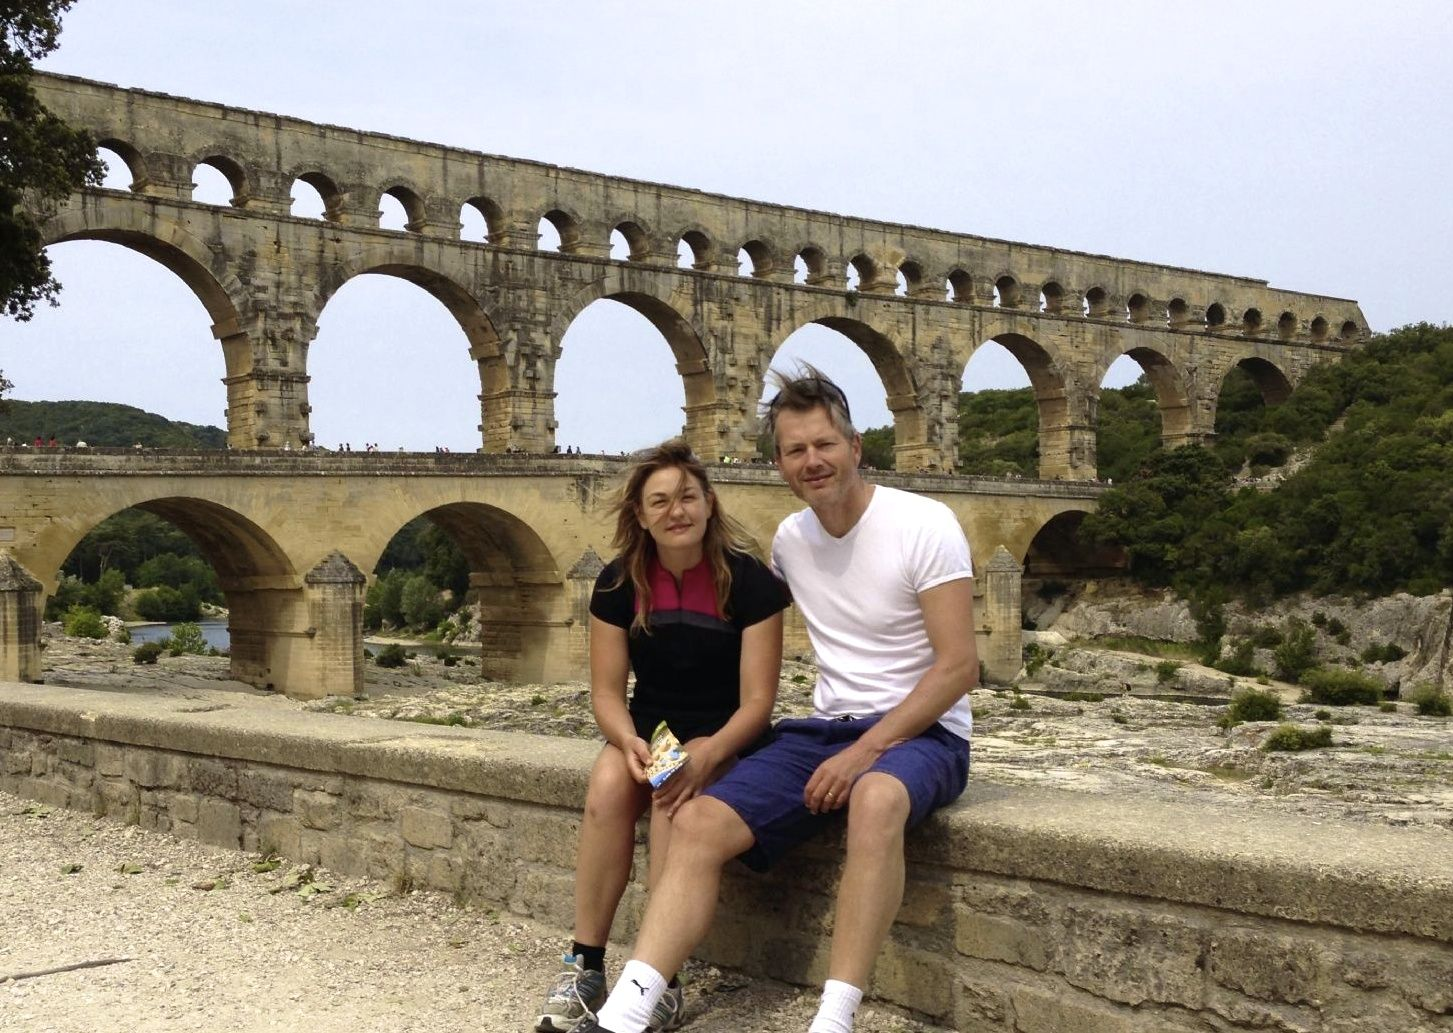 _Holiday.75.8424_full.jpg - France - Provence - Self-Guided Leisure Cycling Holiday - Leisure Cycling